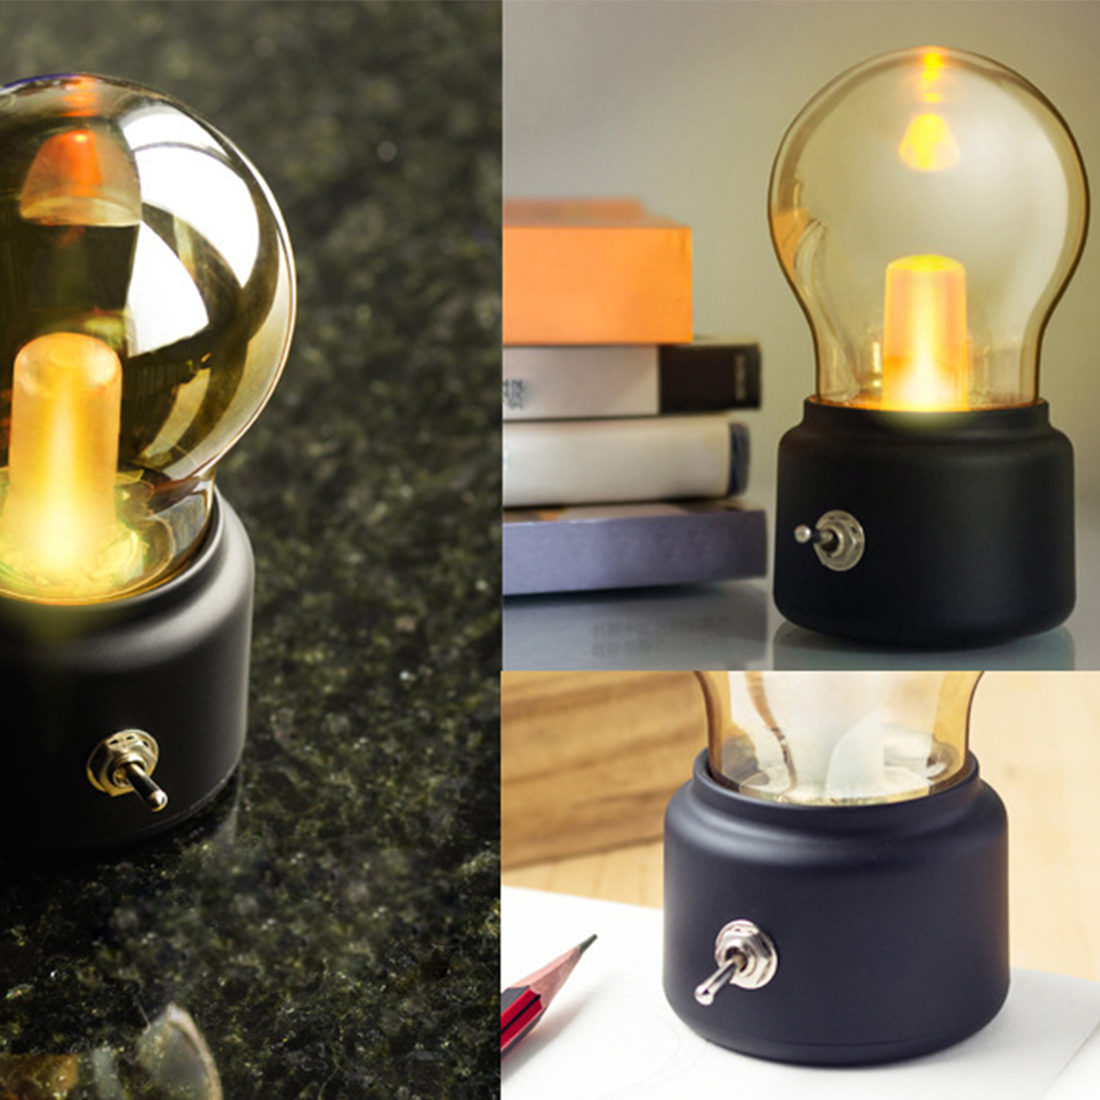 Vintage Bulb Night Light Retro Usb Lamp Rechargeable